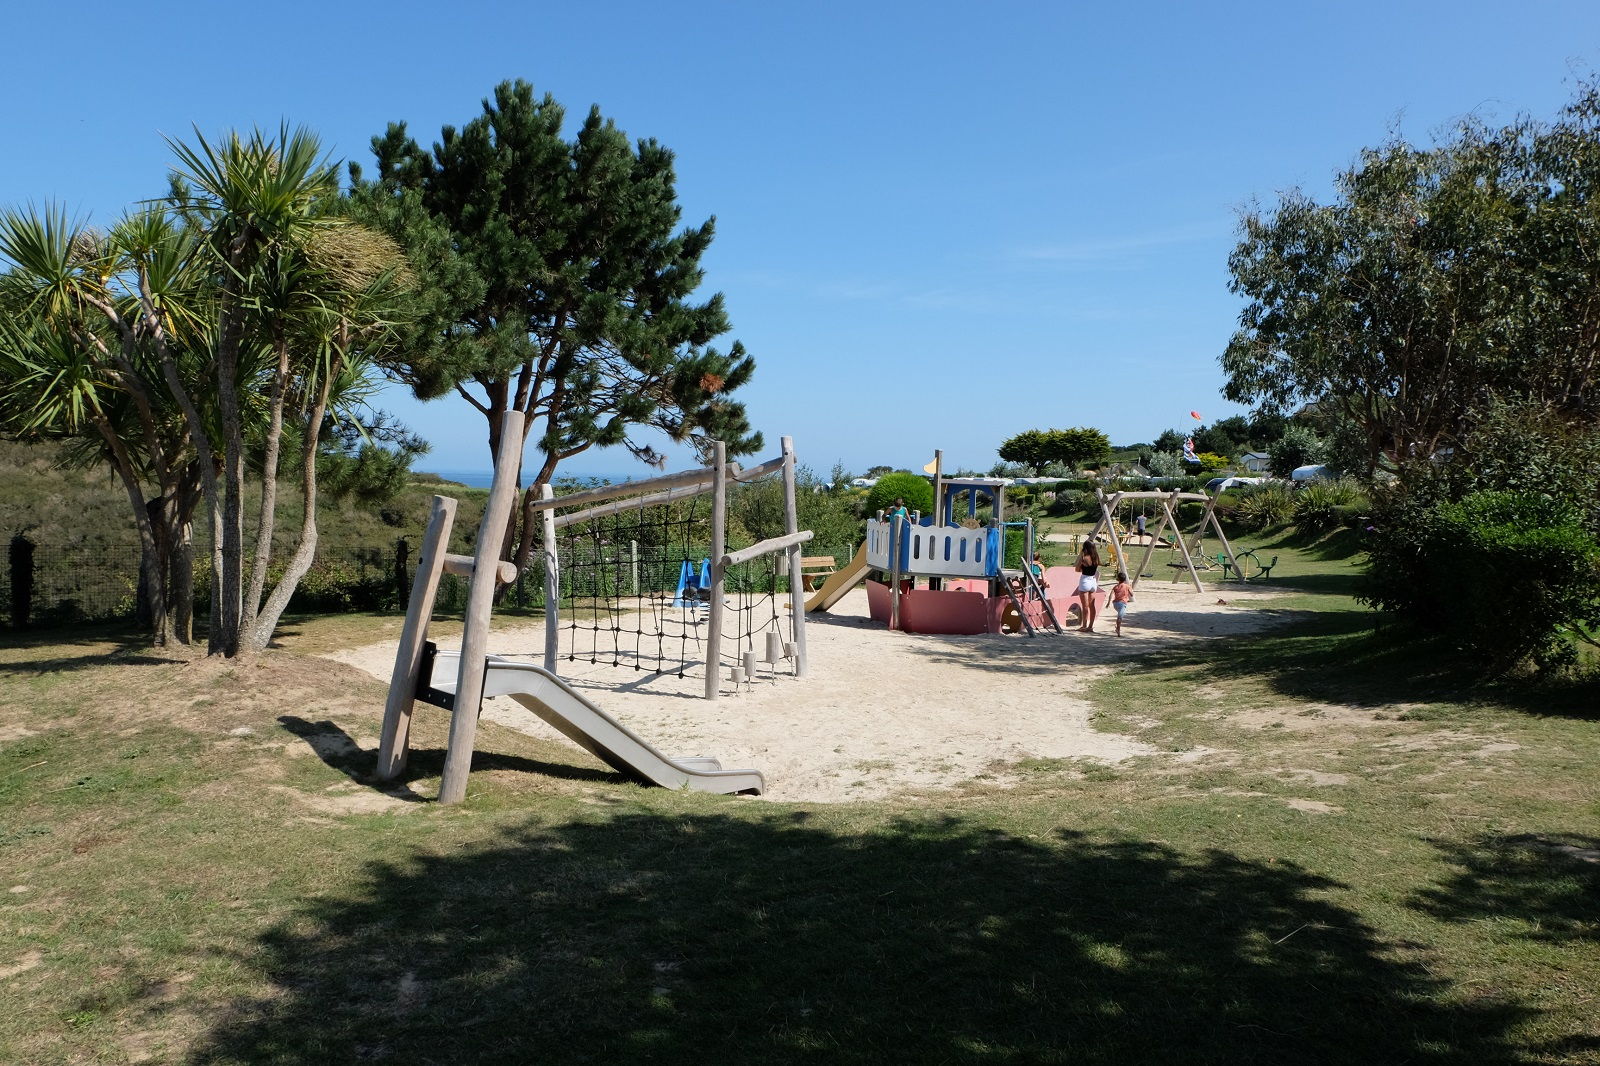 Camping le chatelet saint cast le guildo bretagne for Camping st cast le guildo avec piscine